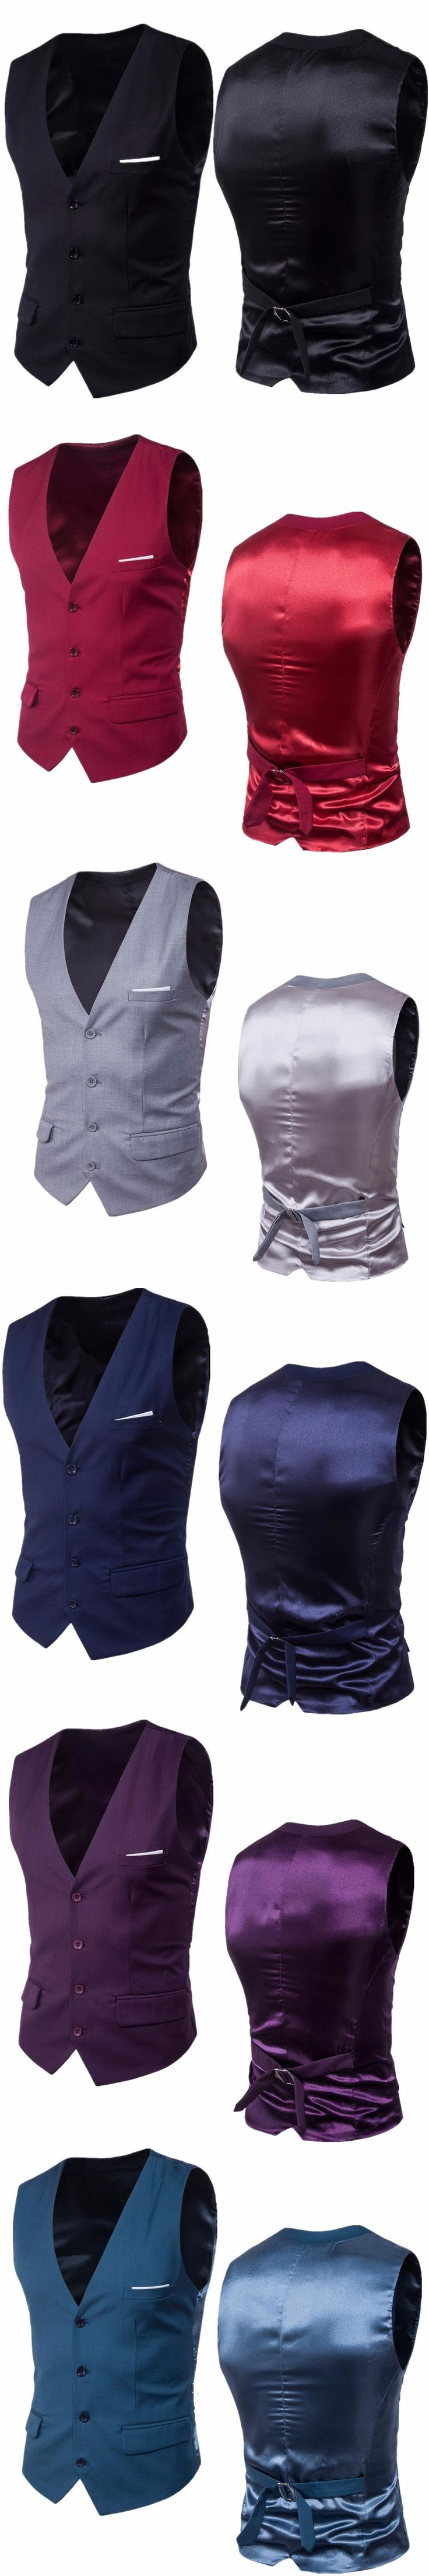 Men's Vest 2017 Europe Design Masculino Sleeveless Suit Vest Vintage Style Gilet V-Necked Slim Fit 9Color 6XL Wedding Waistcoats